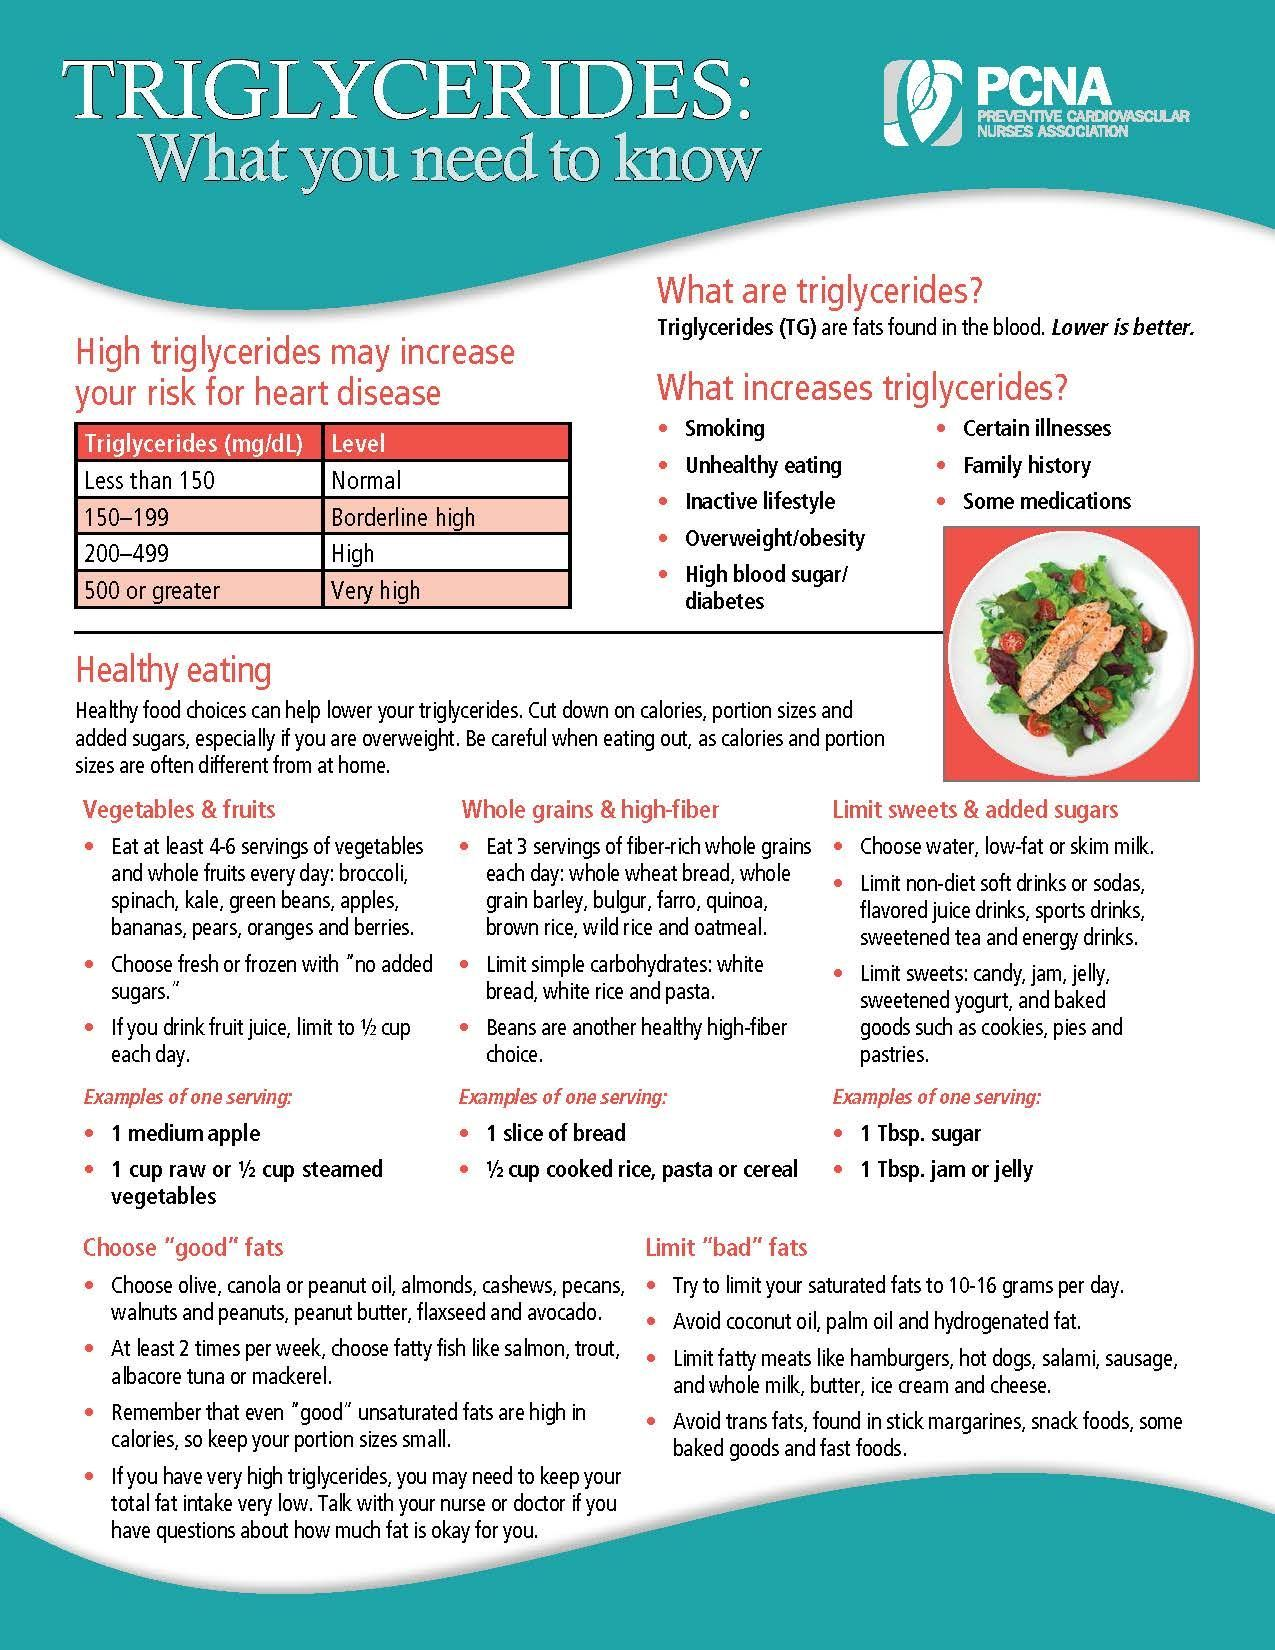 19+ Delightful Cholesterol Levels Healthy